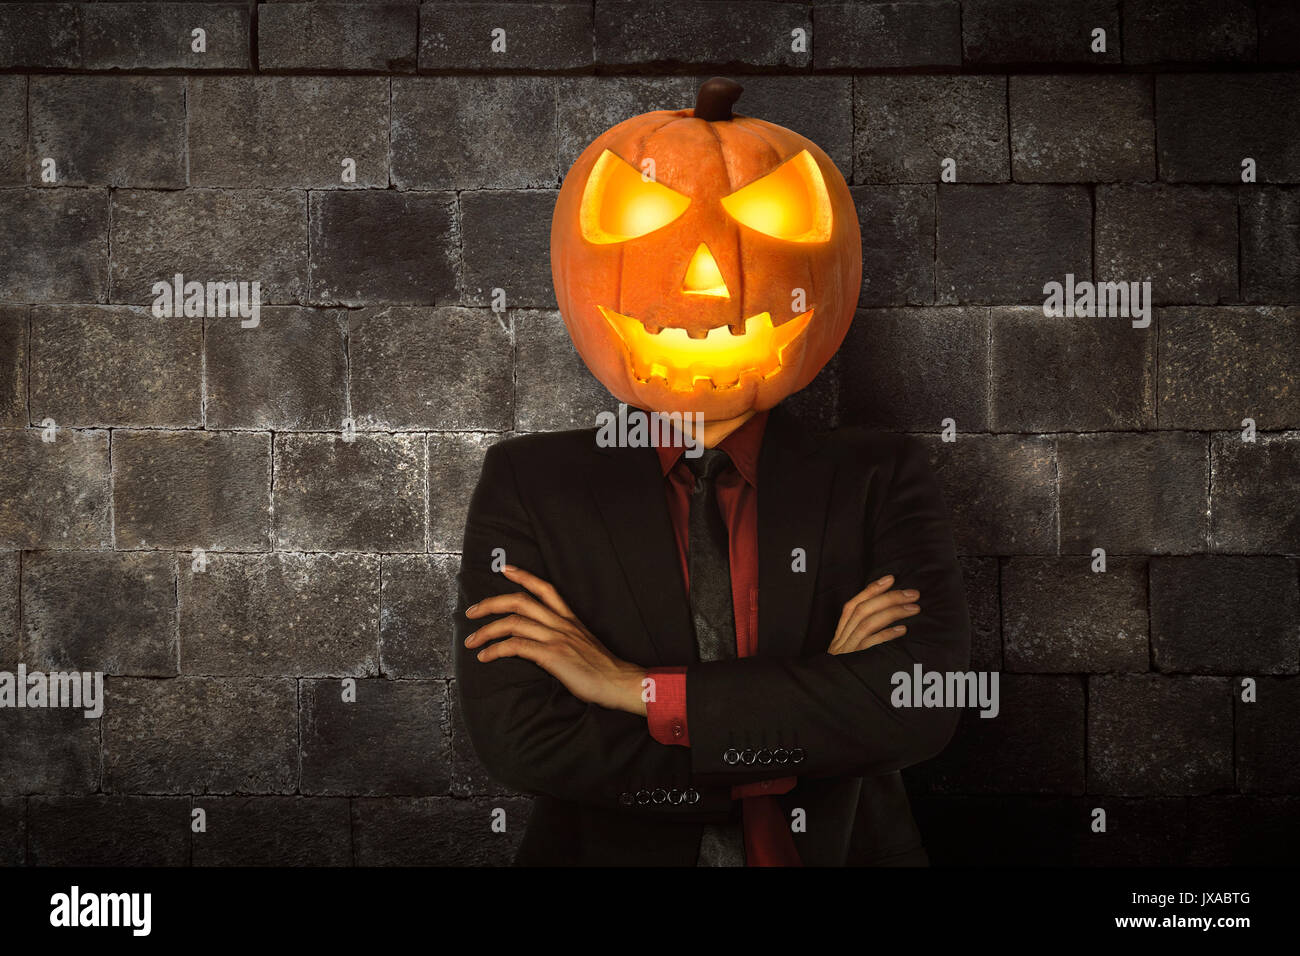 Halloween Maan.Young Halloween Man Wearing Suit With Pumpkin Head For